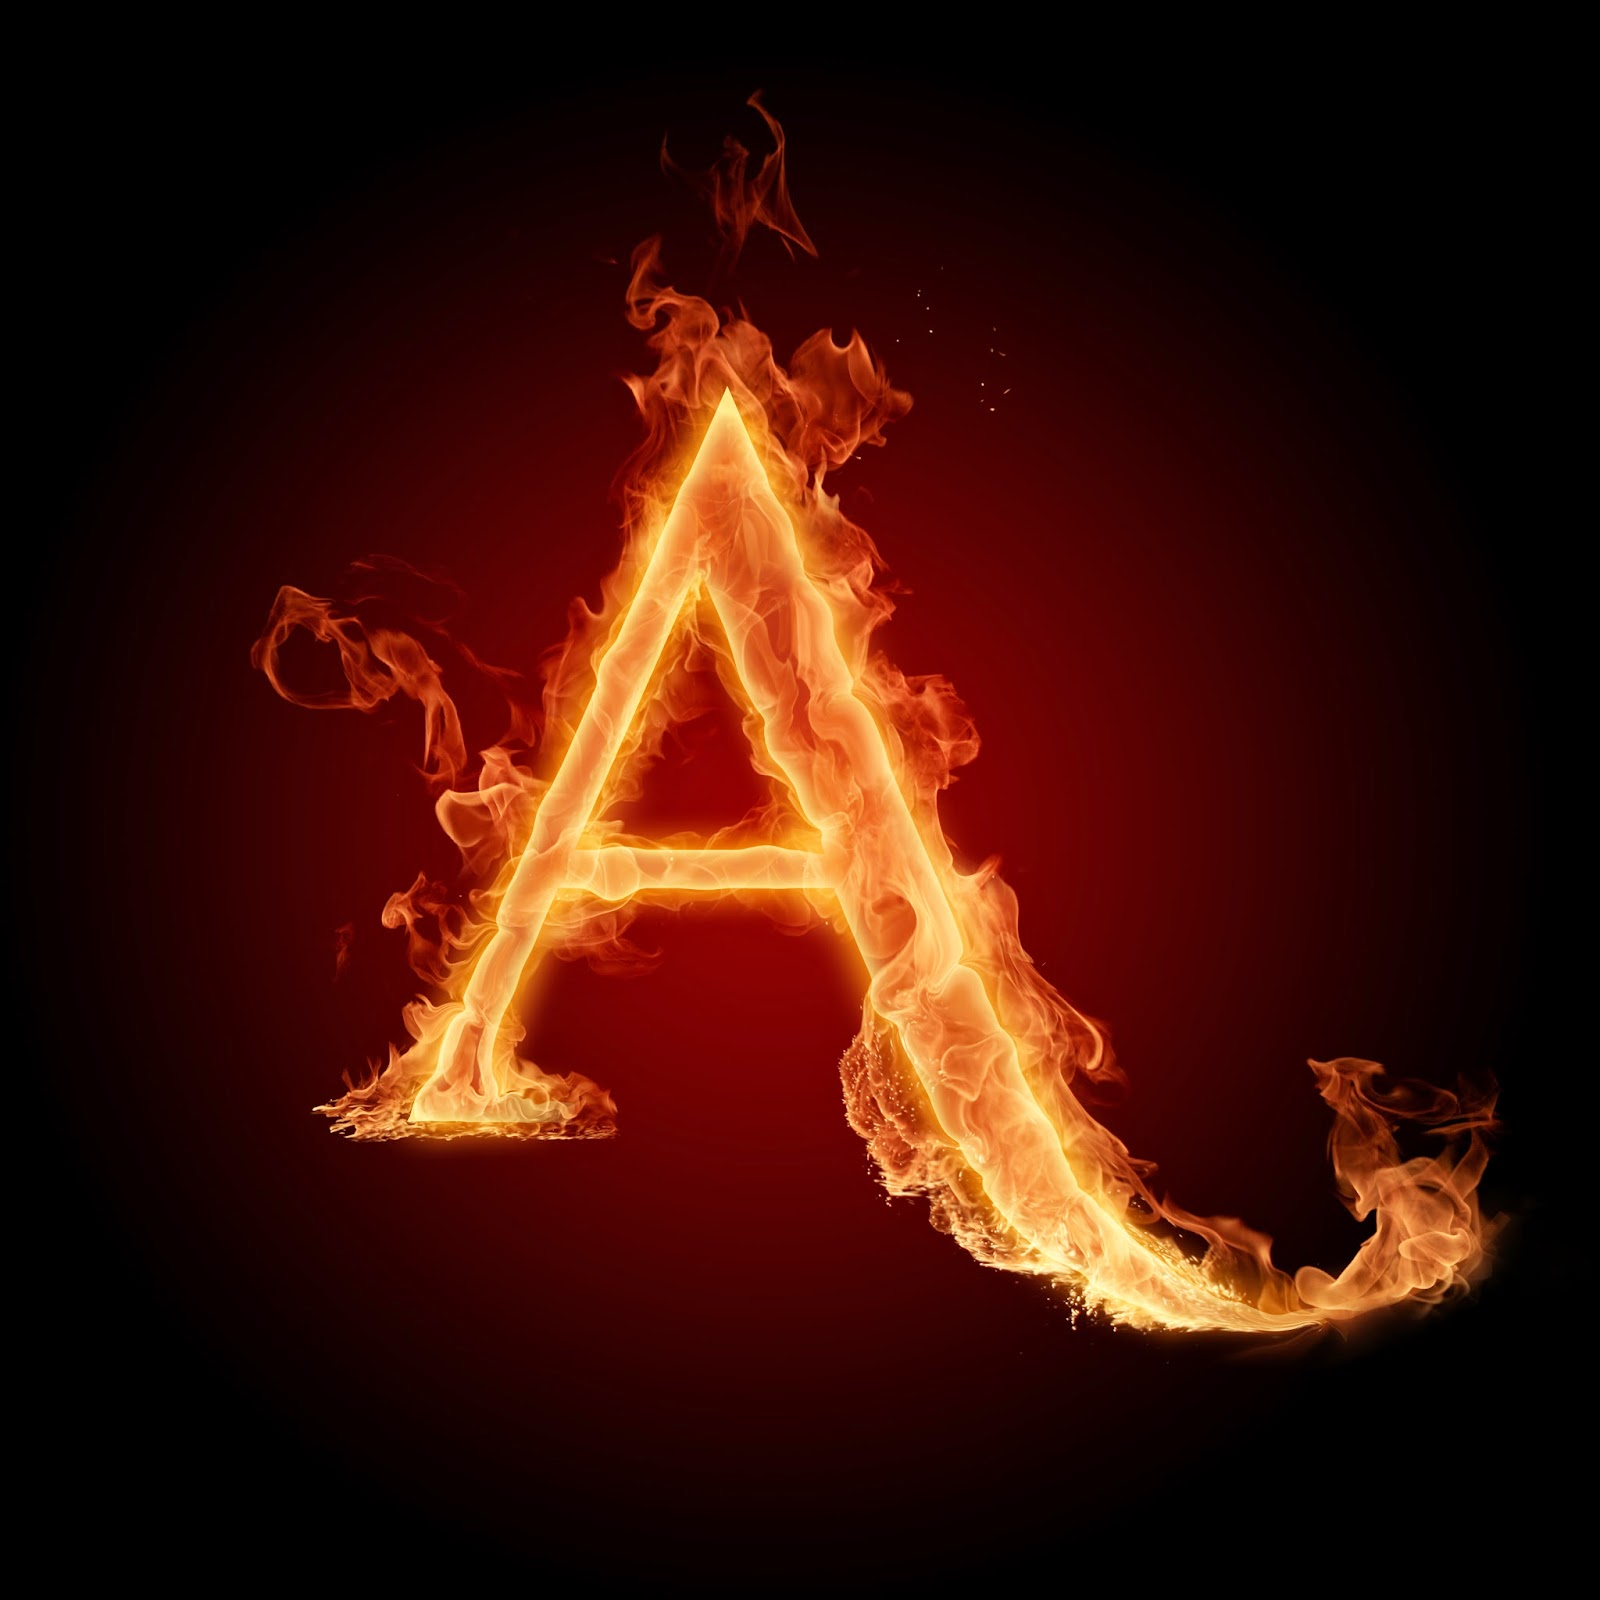 Fire letter alphabet and number from fire letter a , fire letter b, fire letter c, fire letter d, fire letter e, fire letter f, etc.